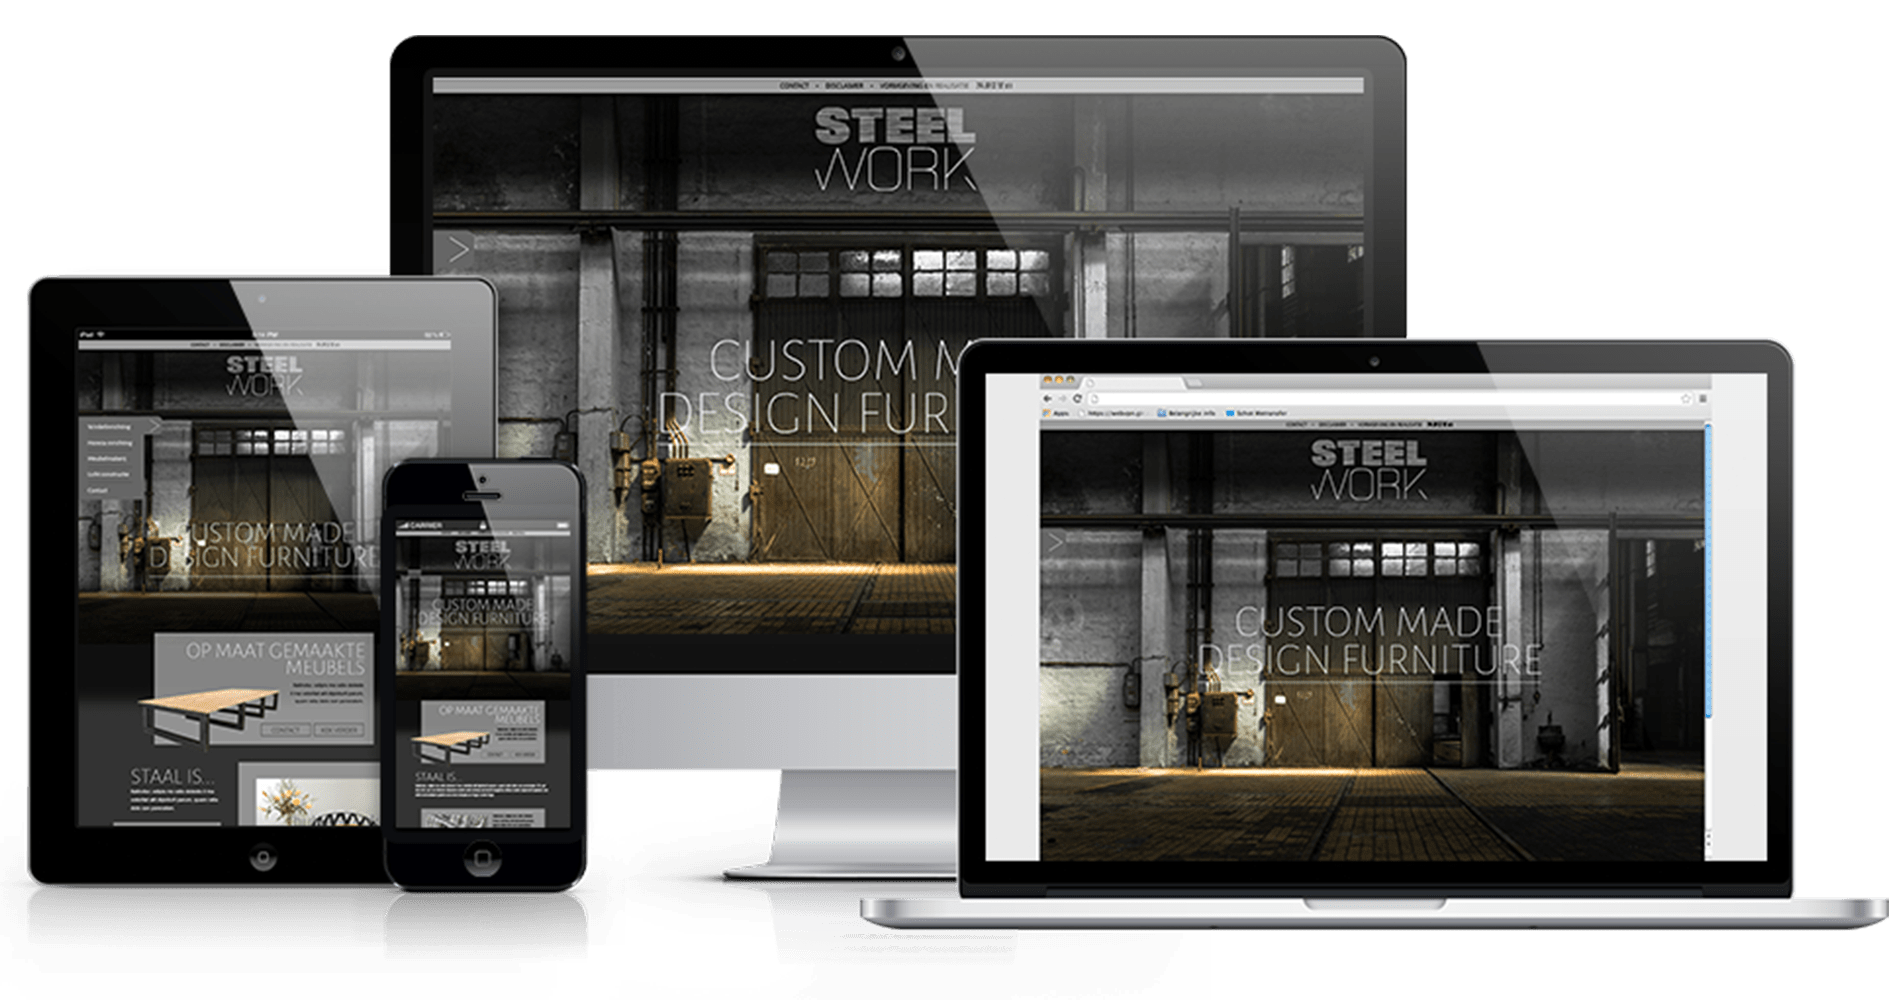 Steelwork website